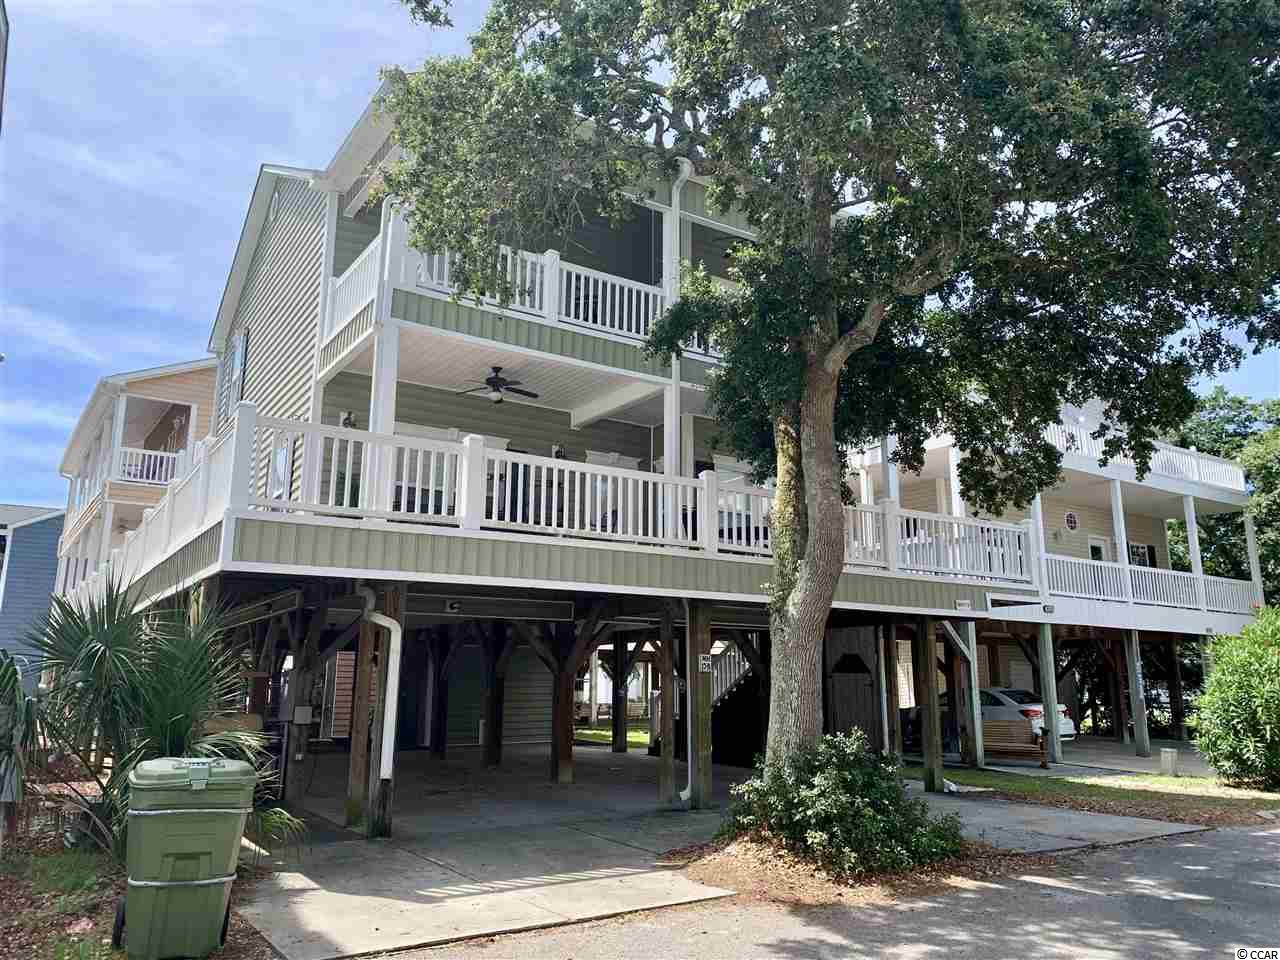 6001 - MH17B S Kings Hwy., Myrtle Beach, South Carolina